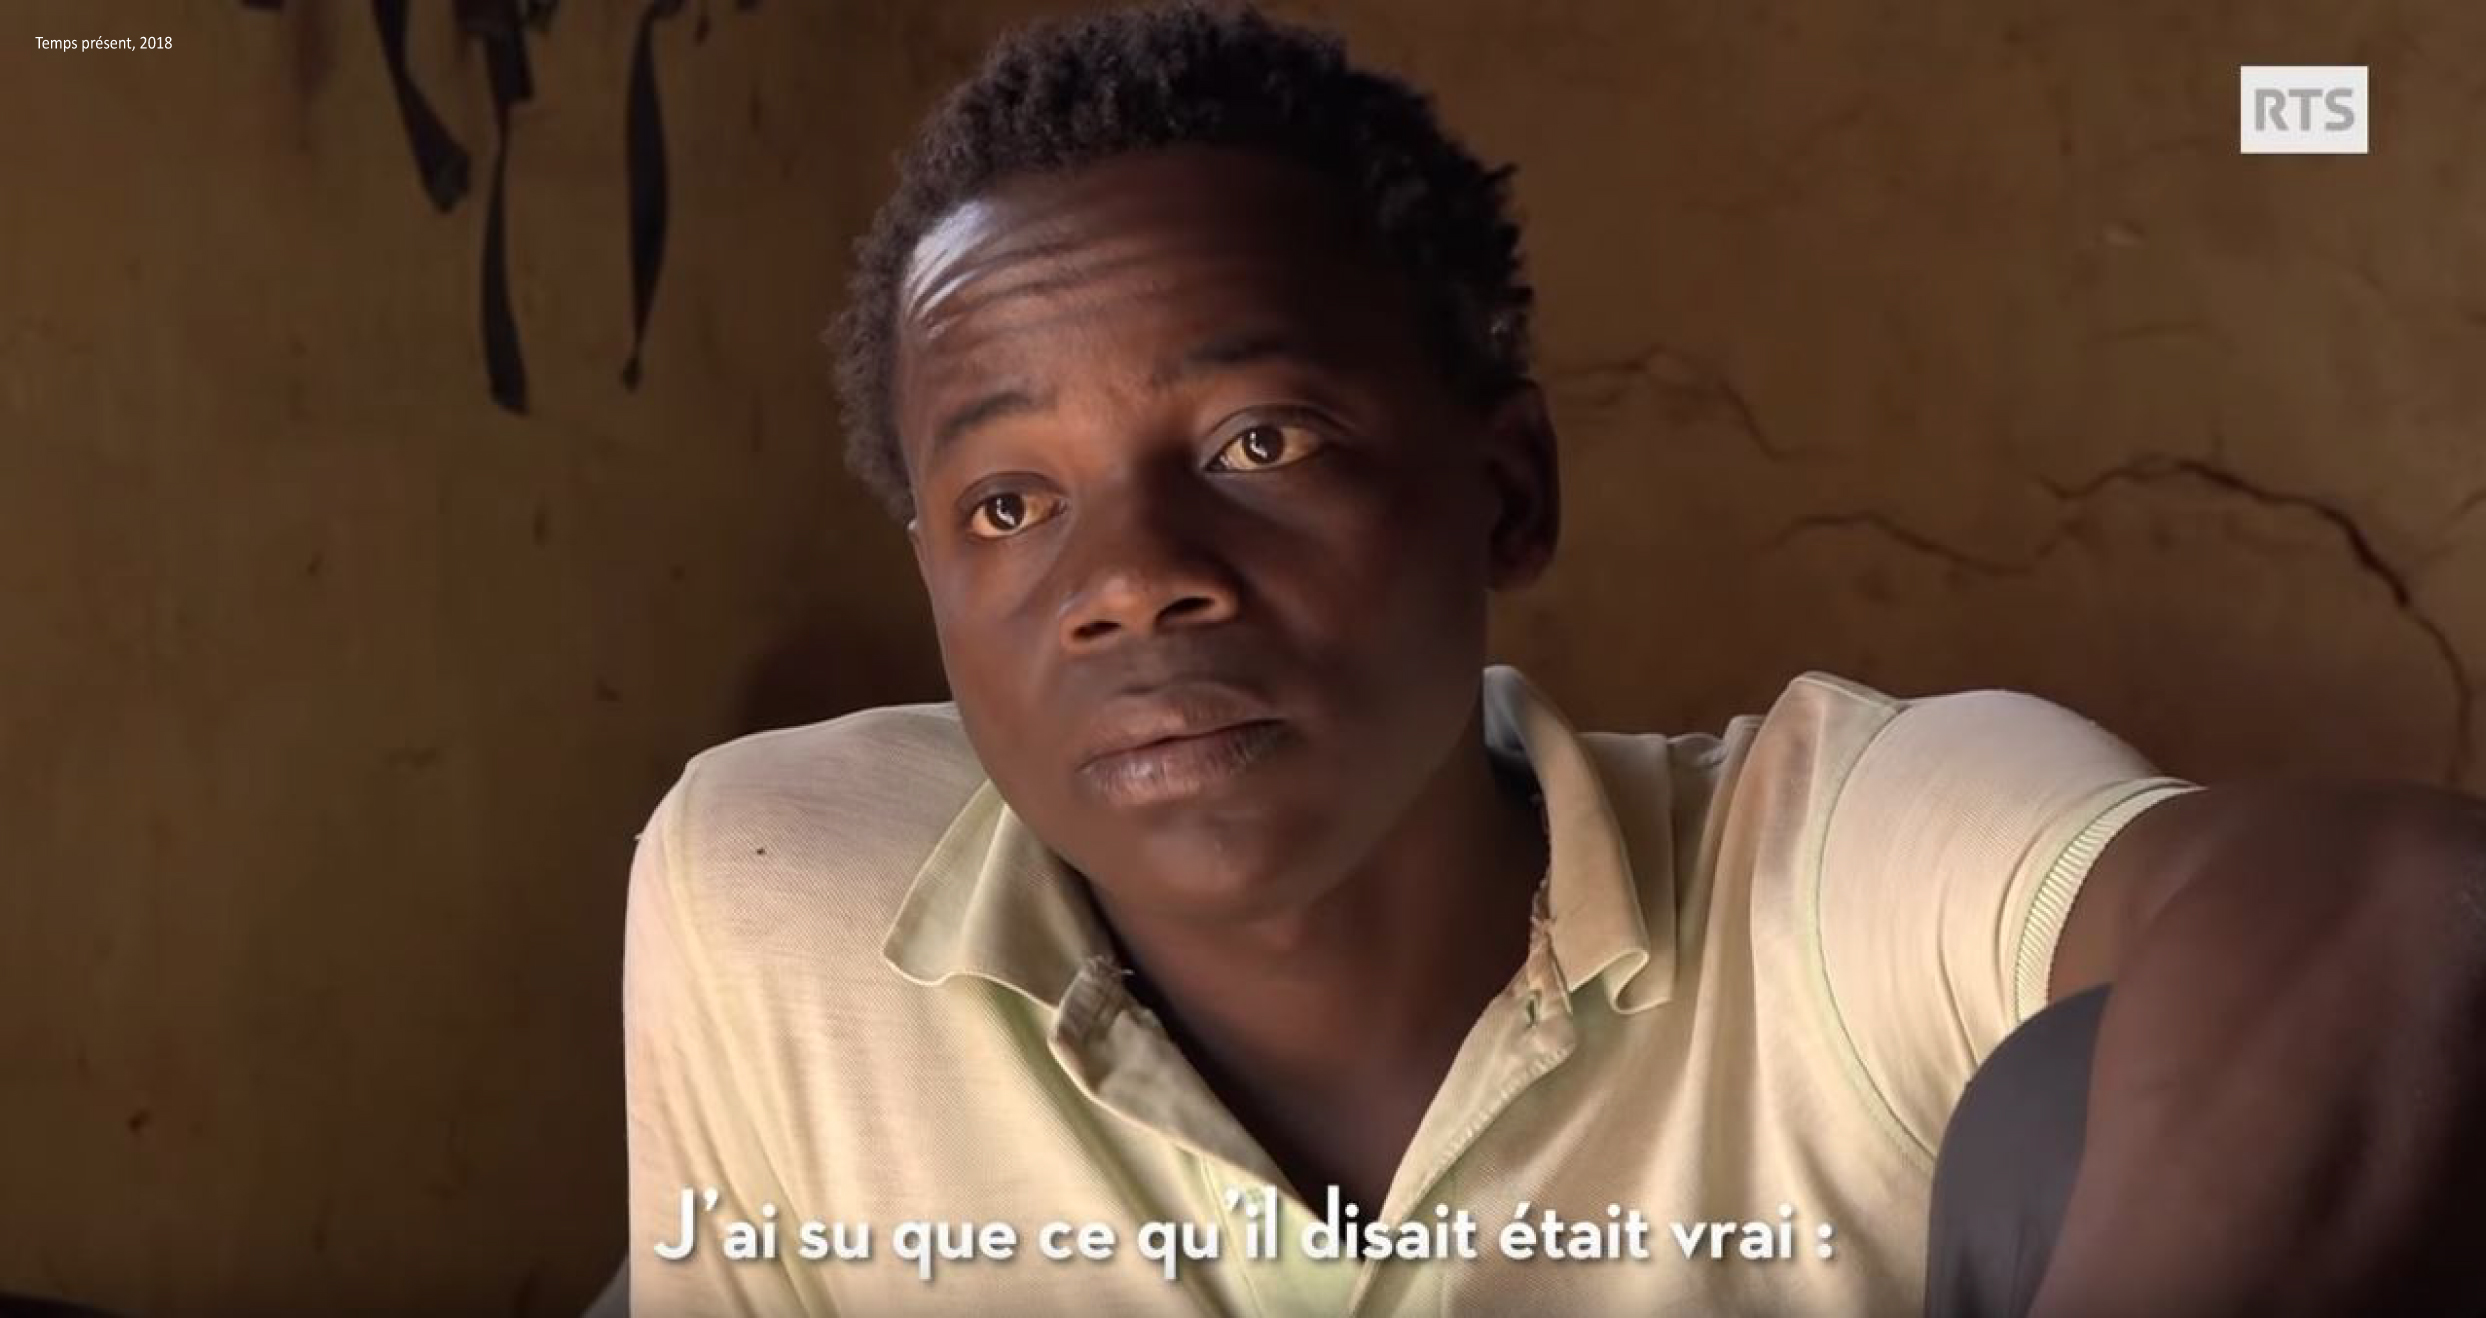 ventdouxprod 2019 nicolas barbier if my continent weren't so ruthless with african economic refugees teenager stranded in Agadez for 7 months